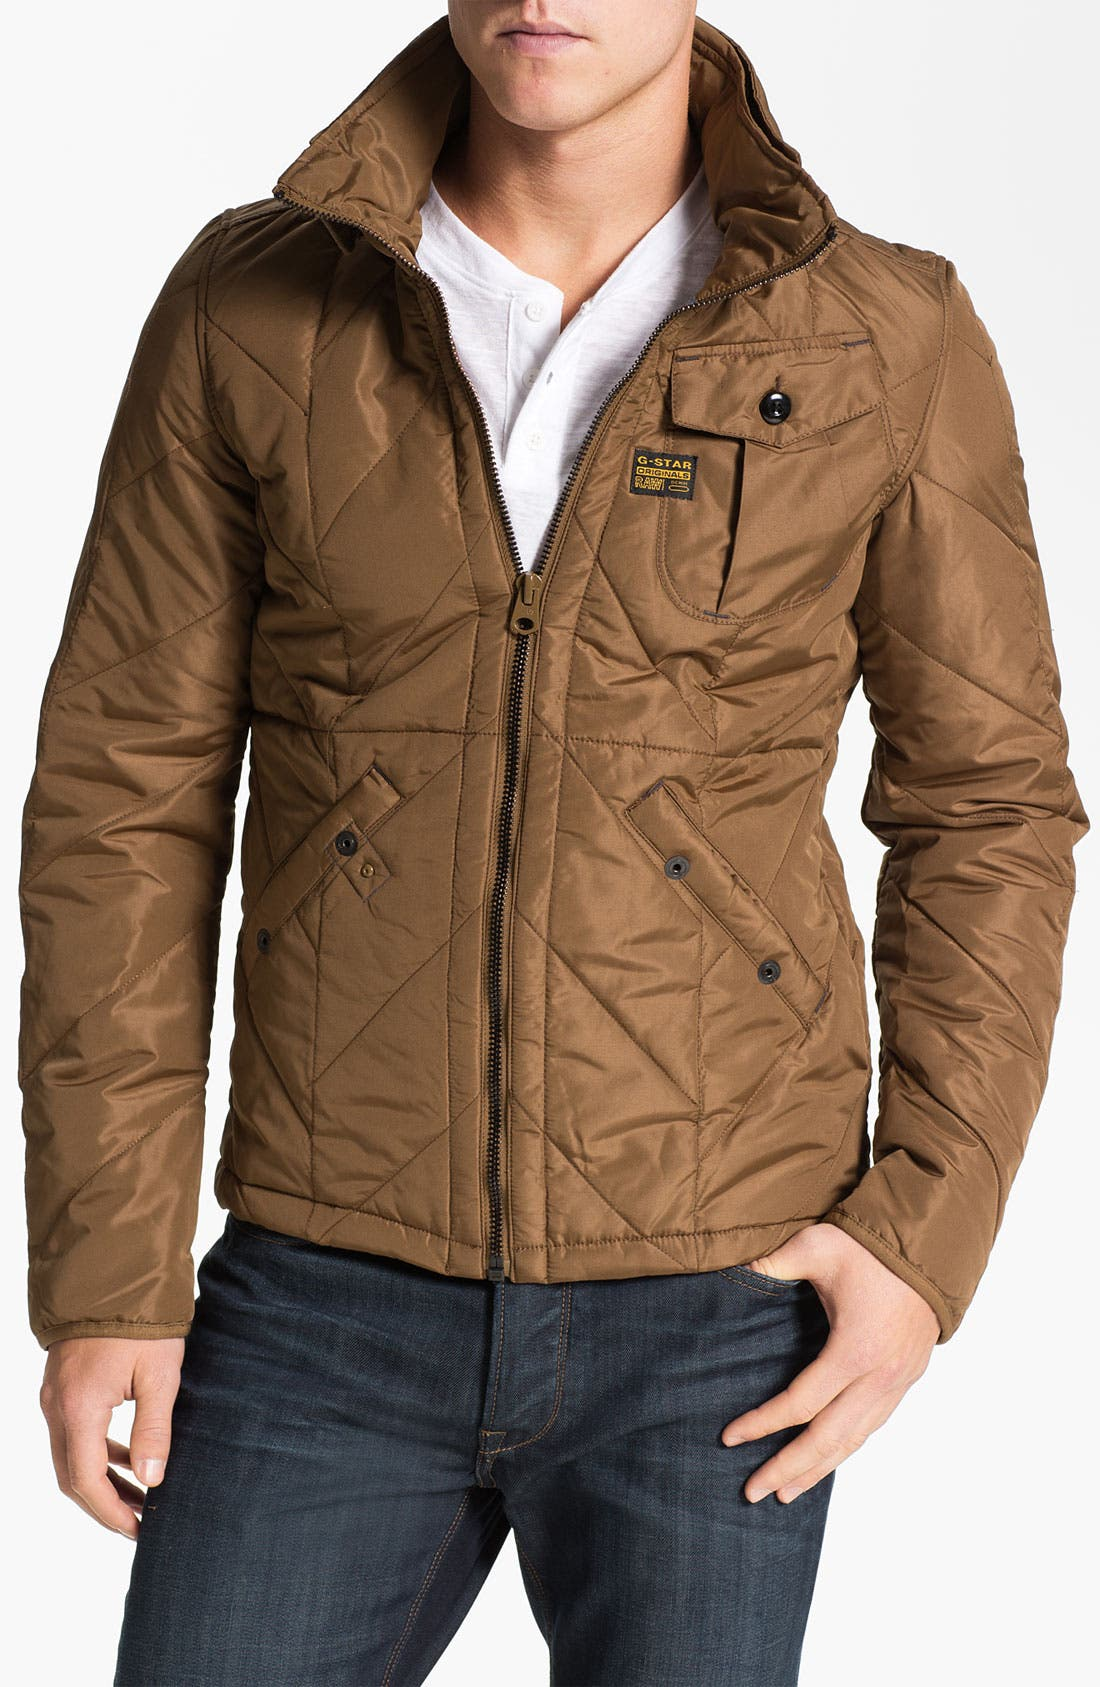 Alternate Image 1 Selected - G-Star Raw Quilted Nylon Jacket